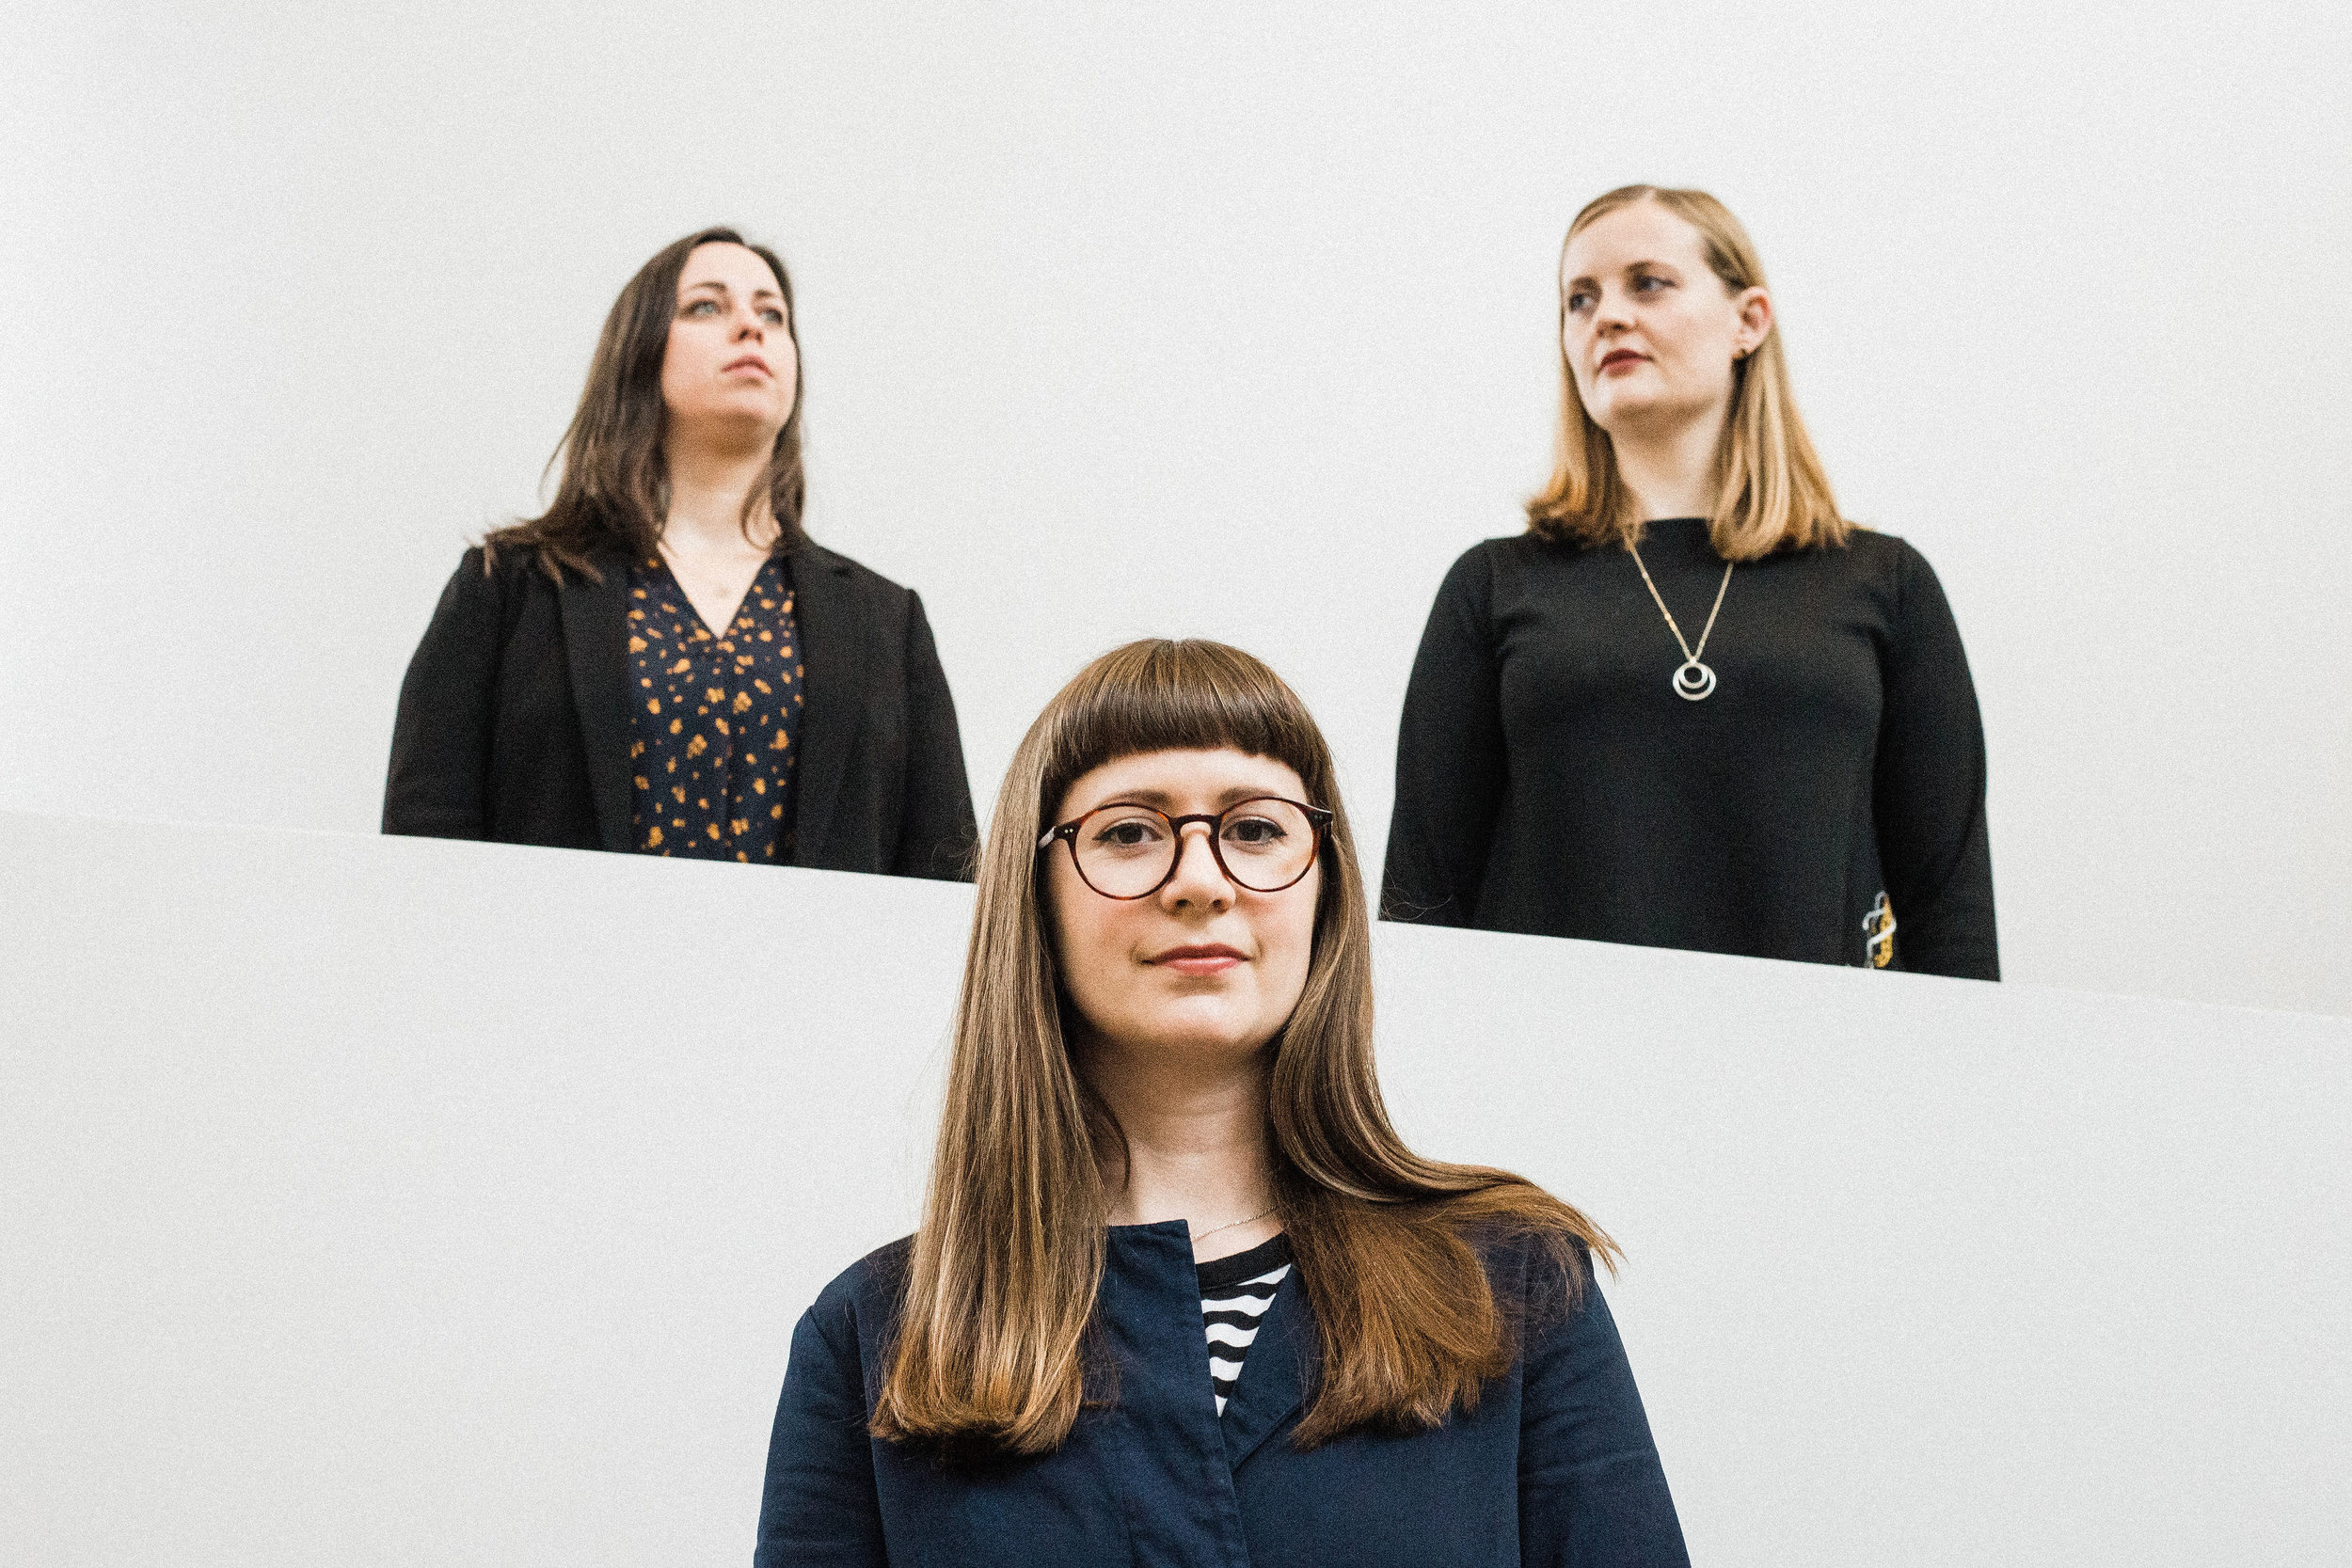 ALDAtrIO AT KALDALÓN 15/09/19 - 4pm, September 15th 2019Kaldalón Music Hall, Harpa, ReykjavíkThe ALDAtrio will present a concert of works in Harpa, Reykjavík by female 20th and 21st century composers from the UK, Iceland and Finland including works by Judith Weir and Kaija Saariaho. This programme will be performed by acclaimed musicians Helen Whitaker (flute), Matthildur Anna Gísladóttir (piano) and Guðný Jónasdóttir (cello). In this hour-long recital we want to champion more women's voices, and show the wide range of sounds, colours and textures that the four composers chosen have explored. Centred around works for the flute, this varied programme will feature flute, alto flute, piccolo, cello and piano.MORE HERE